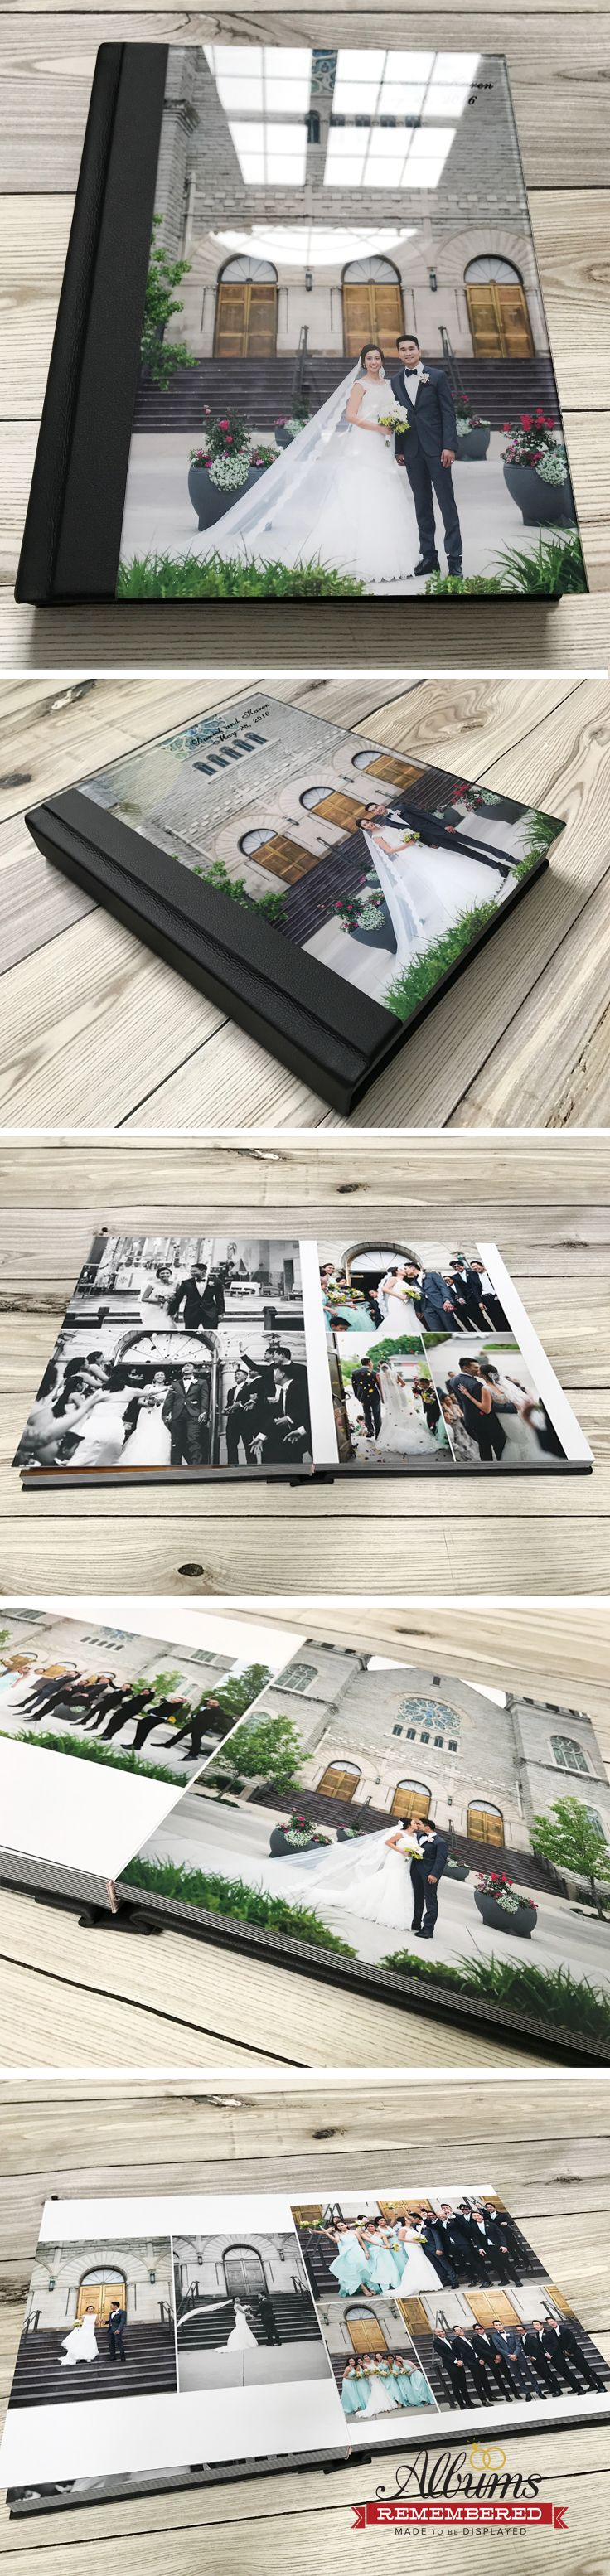 Acrylic cover wedding photo album with free design service and unlimited revisions. Visit us at www.albumsremembered.com for all the promos.